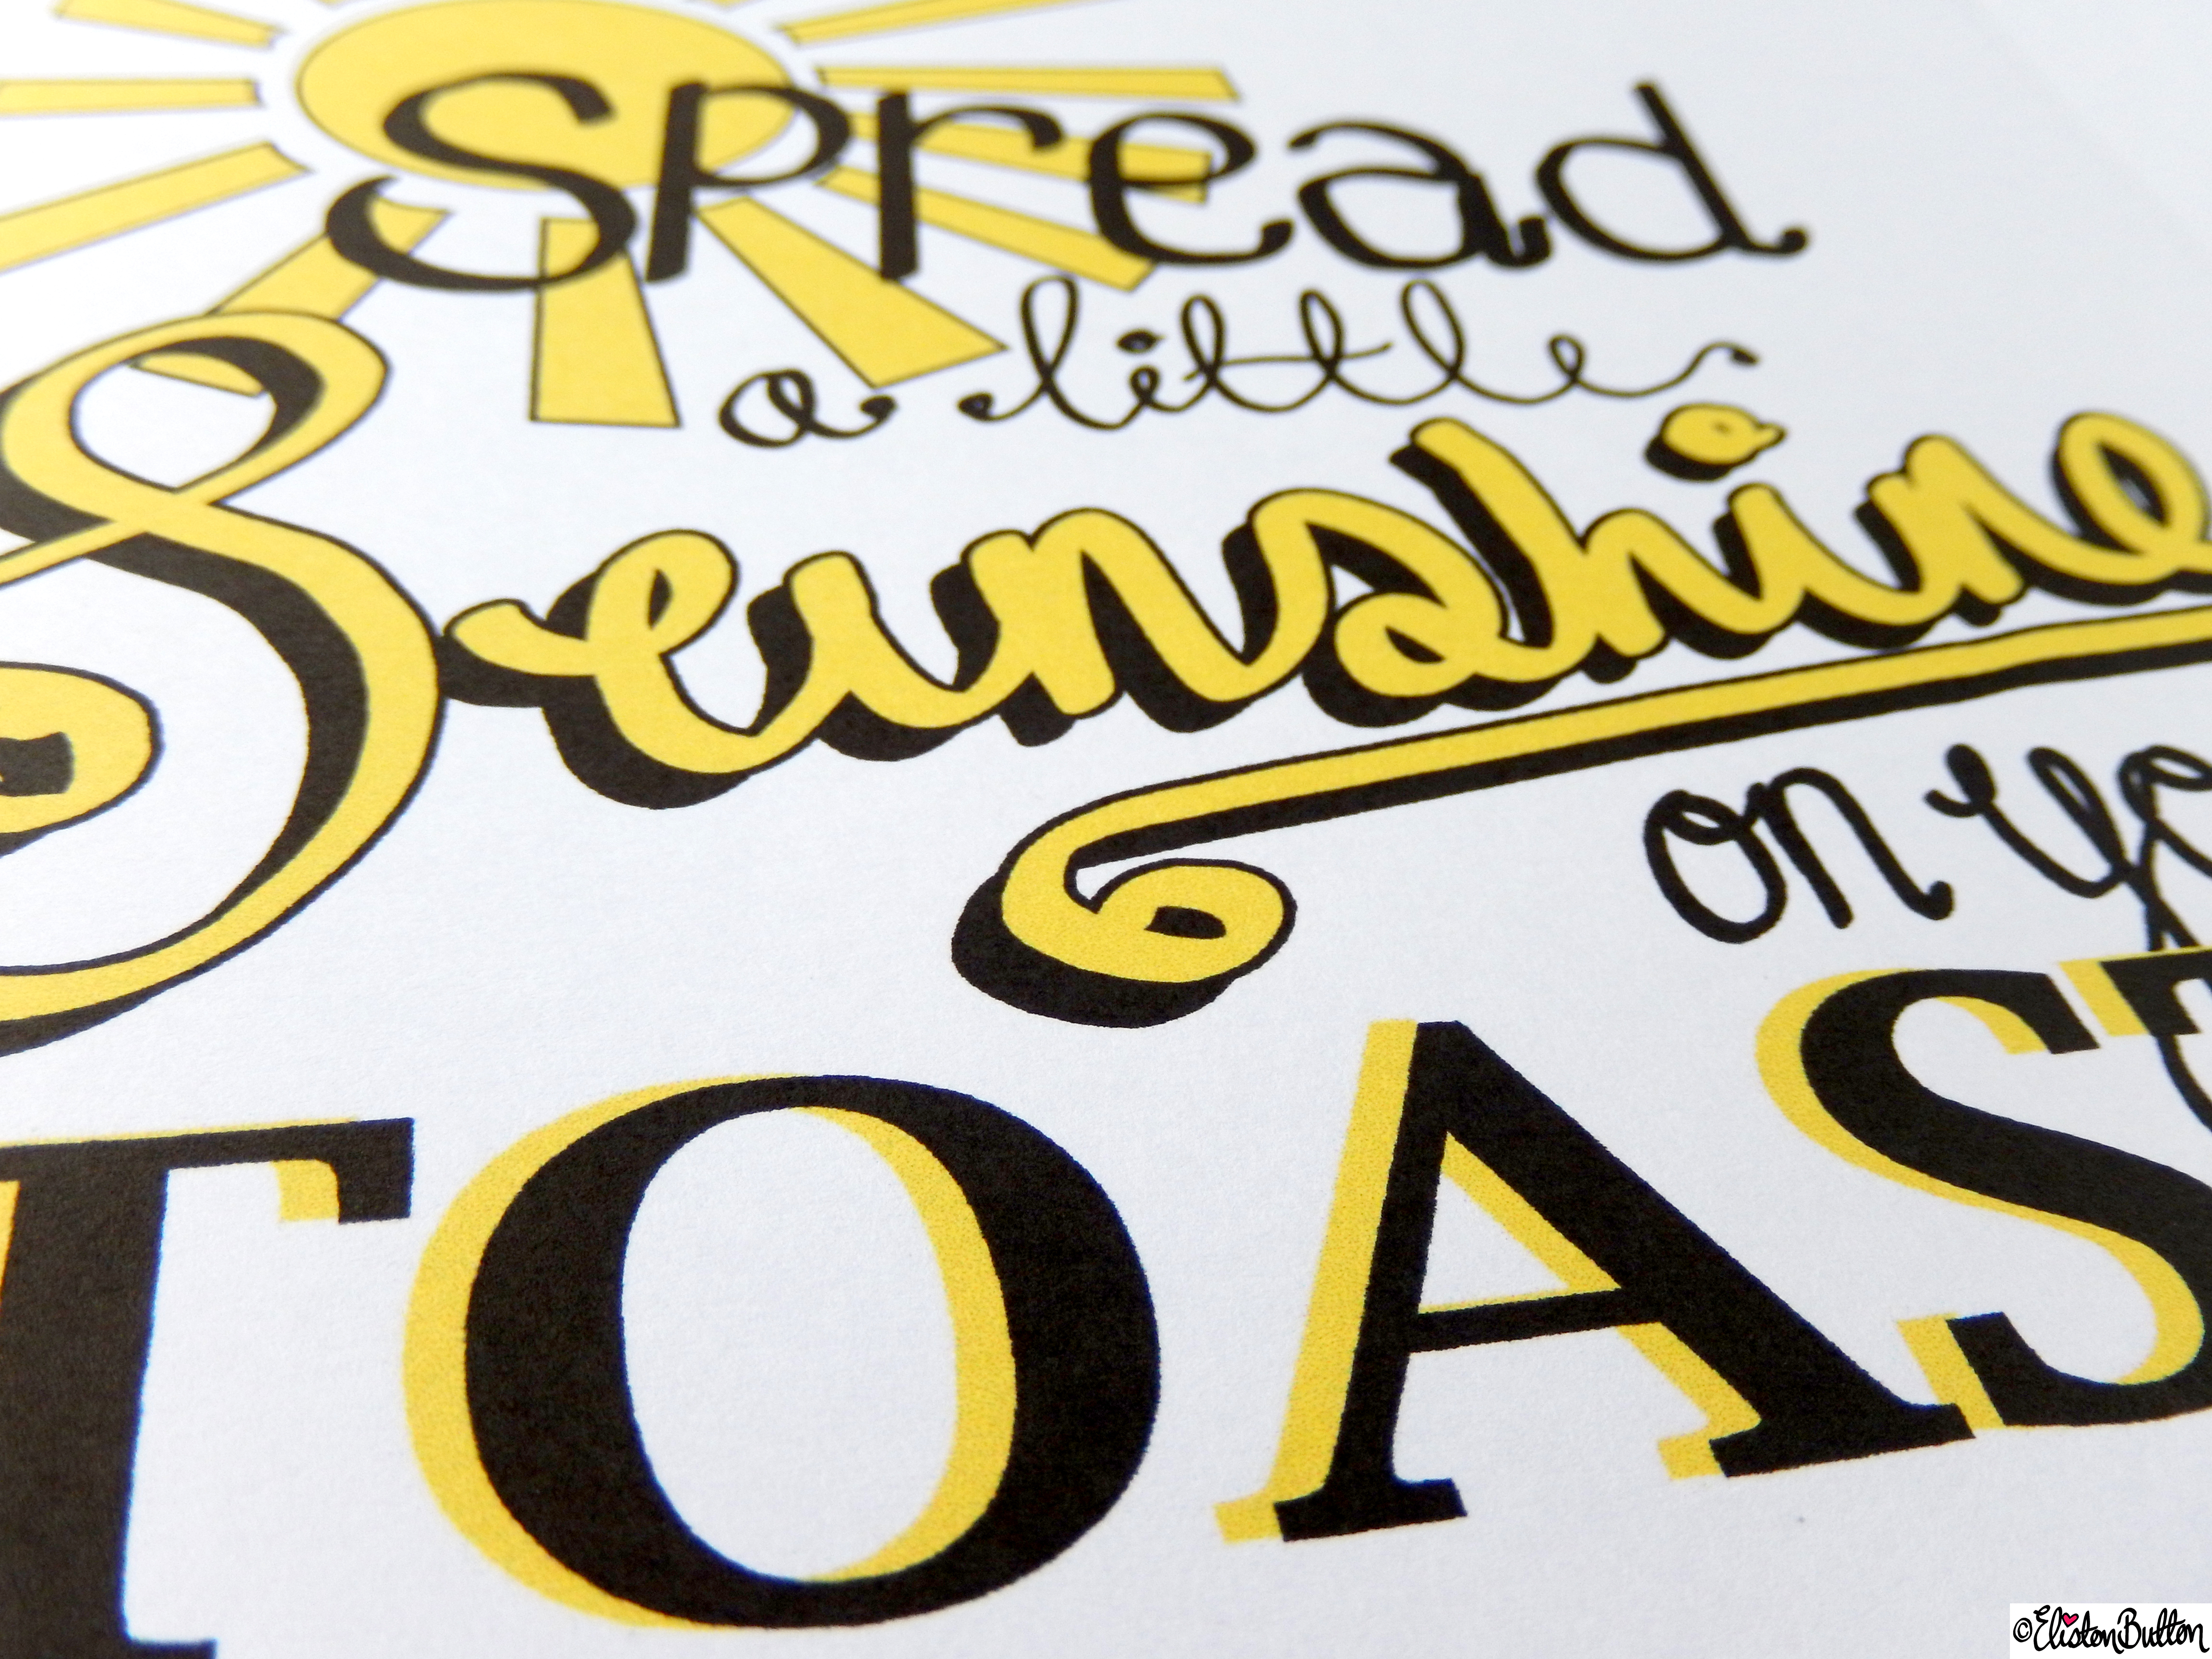 Spread a Little Sunshine Typographic Quote Illustration Wall Art Print (1) - Create 28 - No. 22 & 23 - Typographic Quote Illustrations at www.elistonbutton.com - Eliston Button - That Crafty Kid – Art, Design, Craft & Adventure.